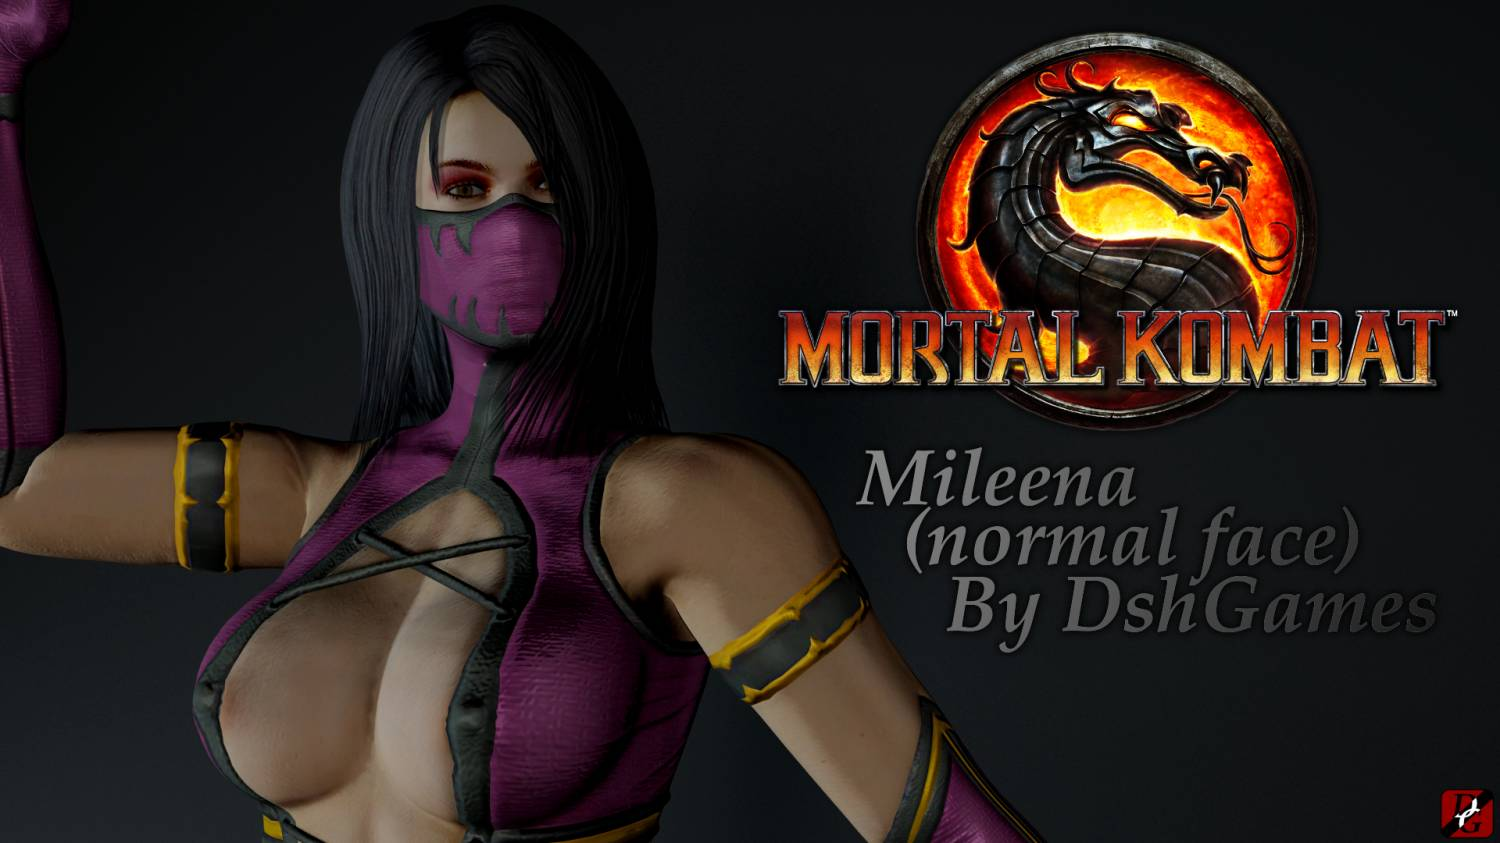 Mileena (normal face)